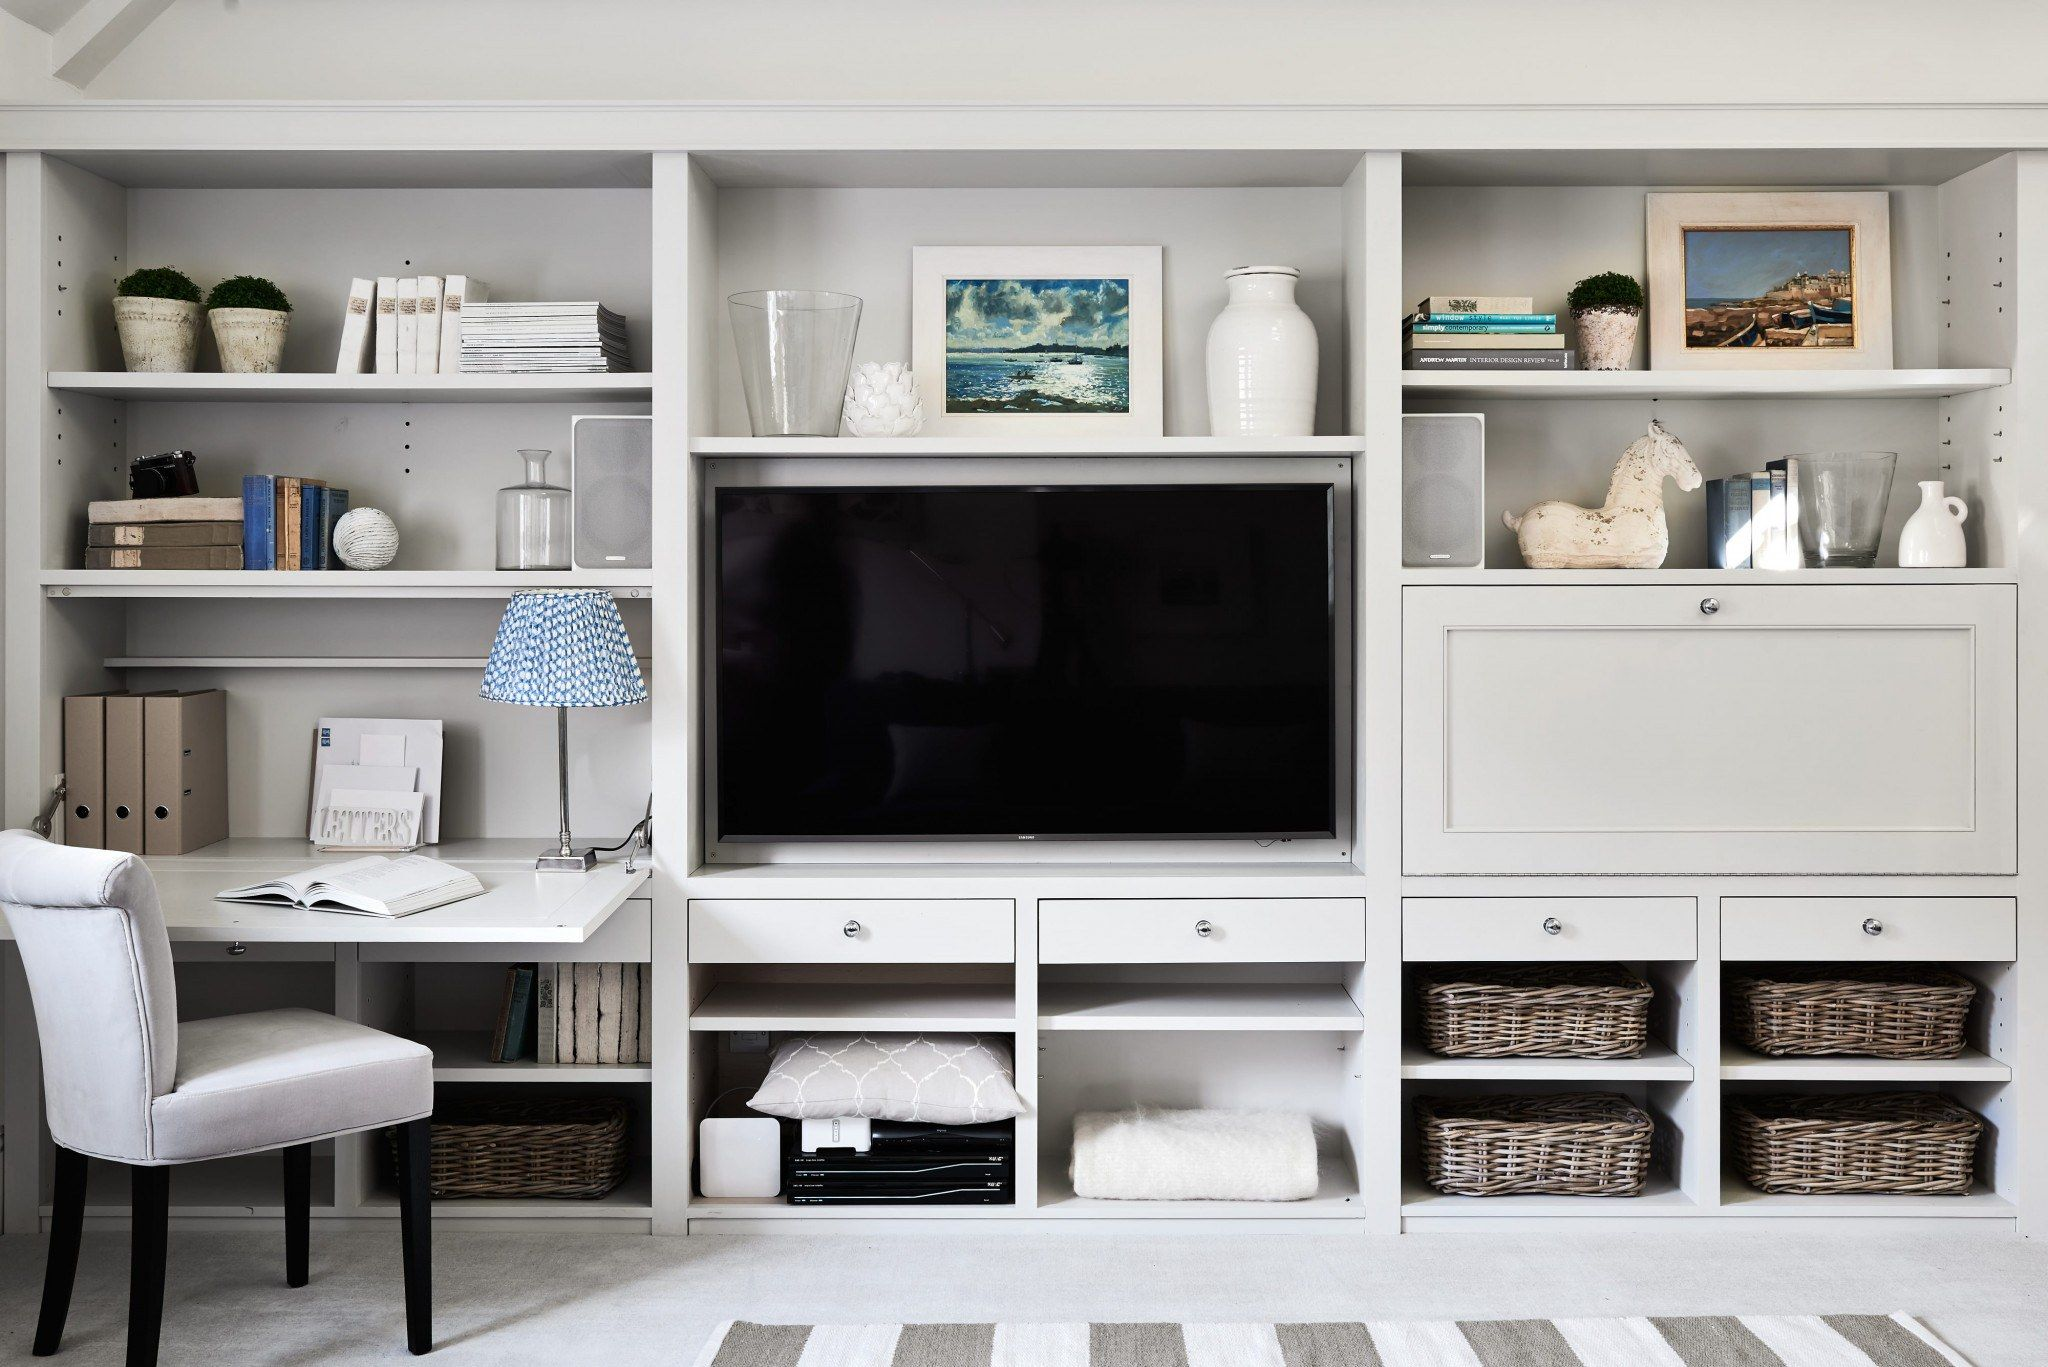 Built Ins And Workspace Living Room Wall Units Living Room Built Ins Bedroom Wall Units